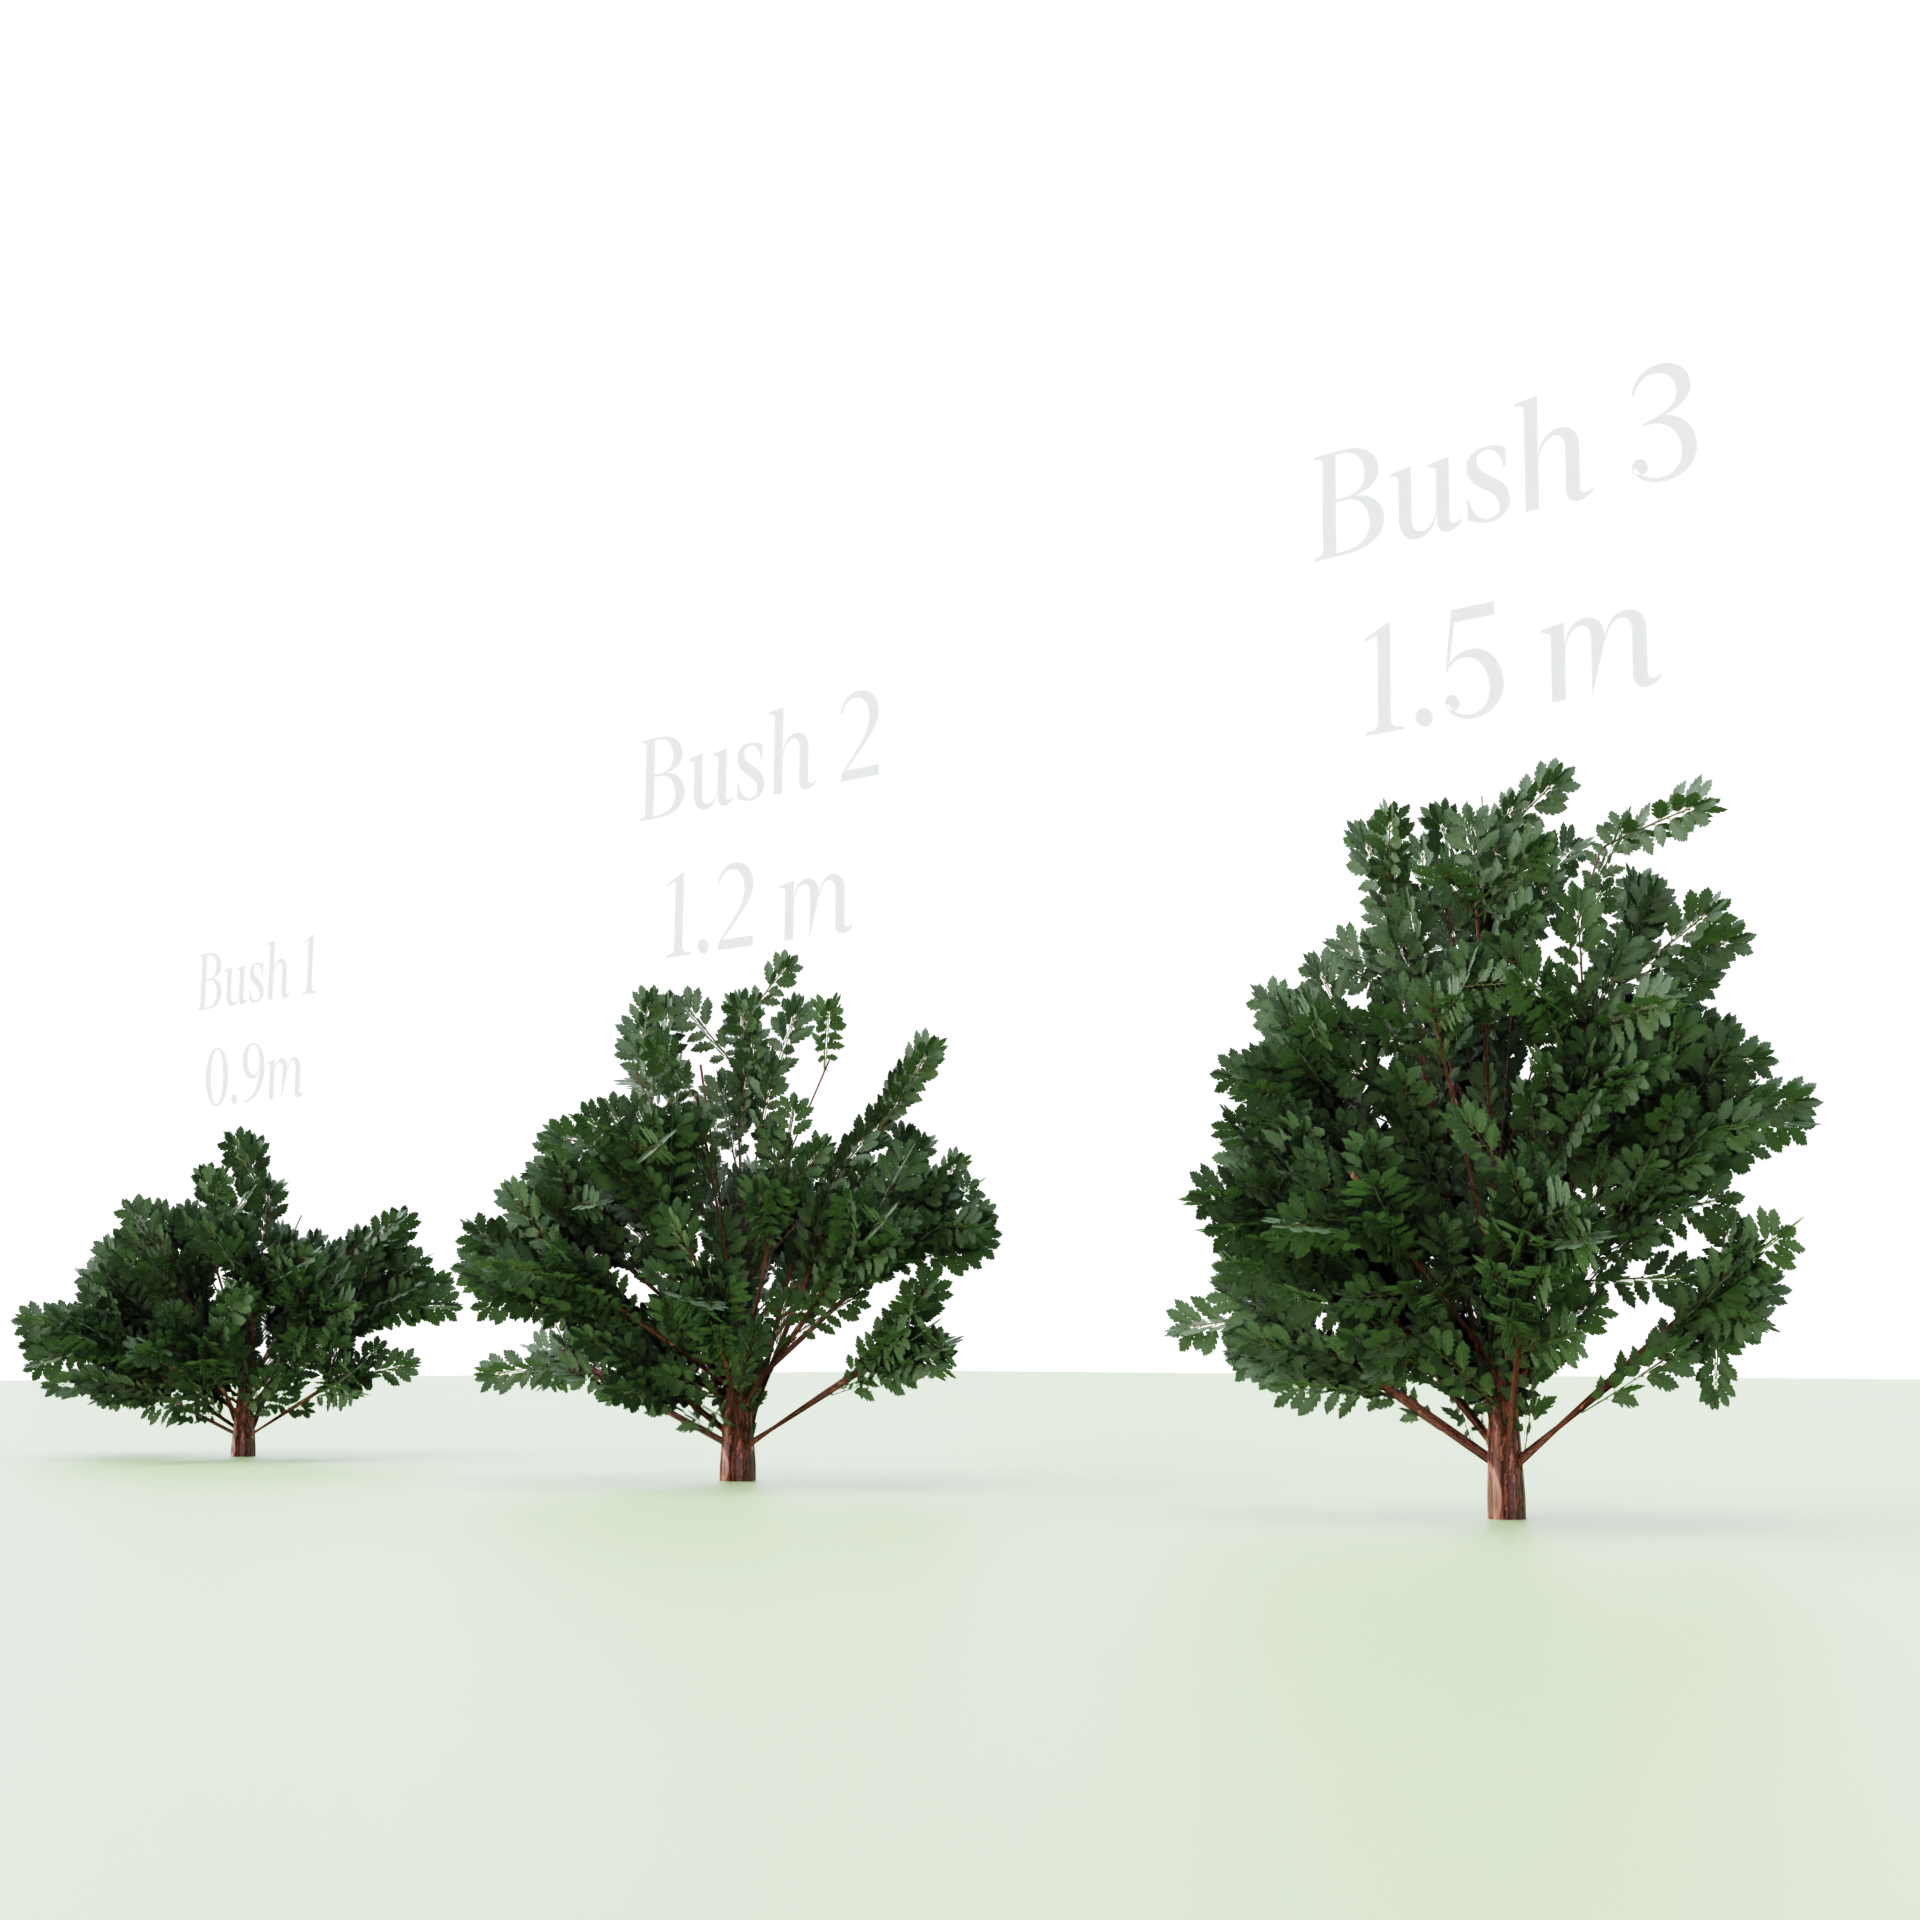 Three Bush's preview image 2